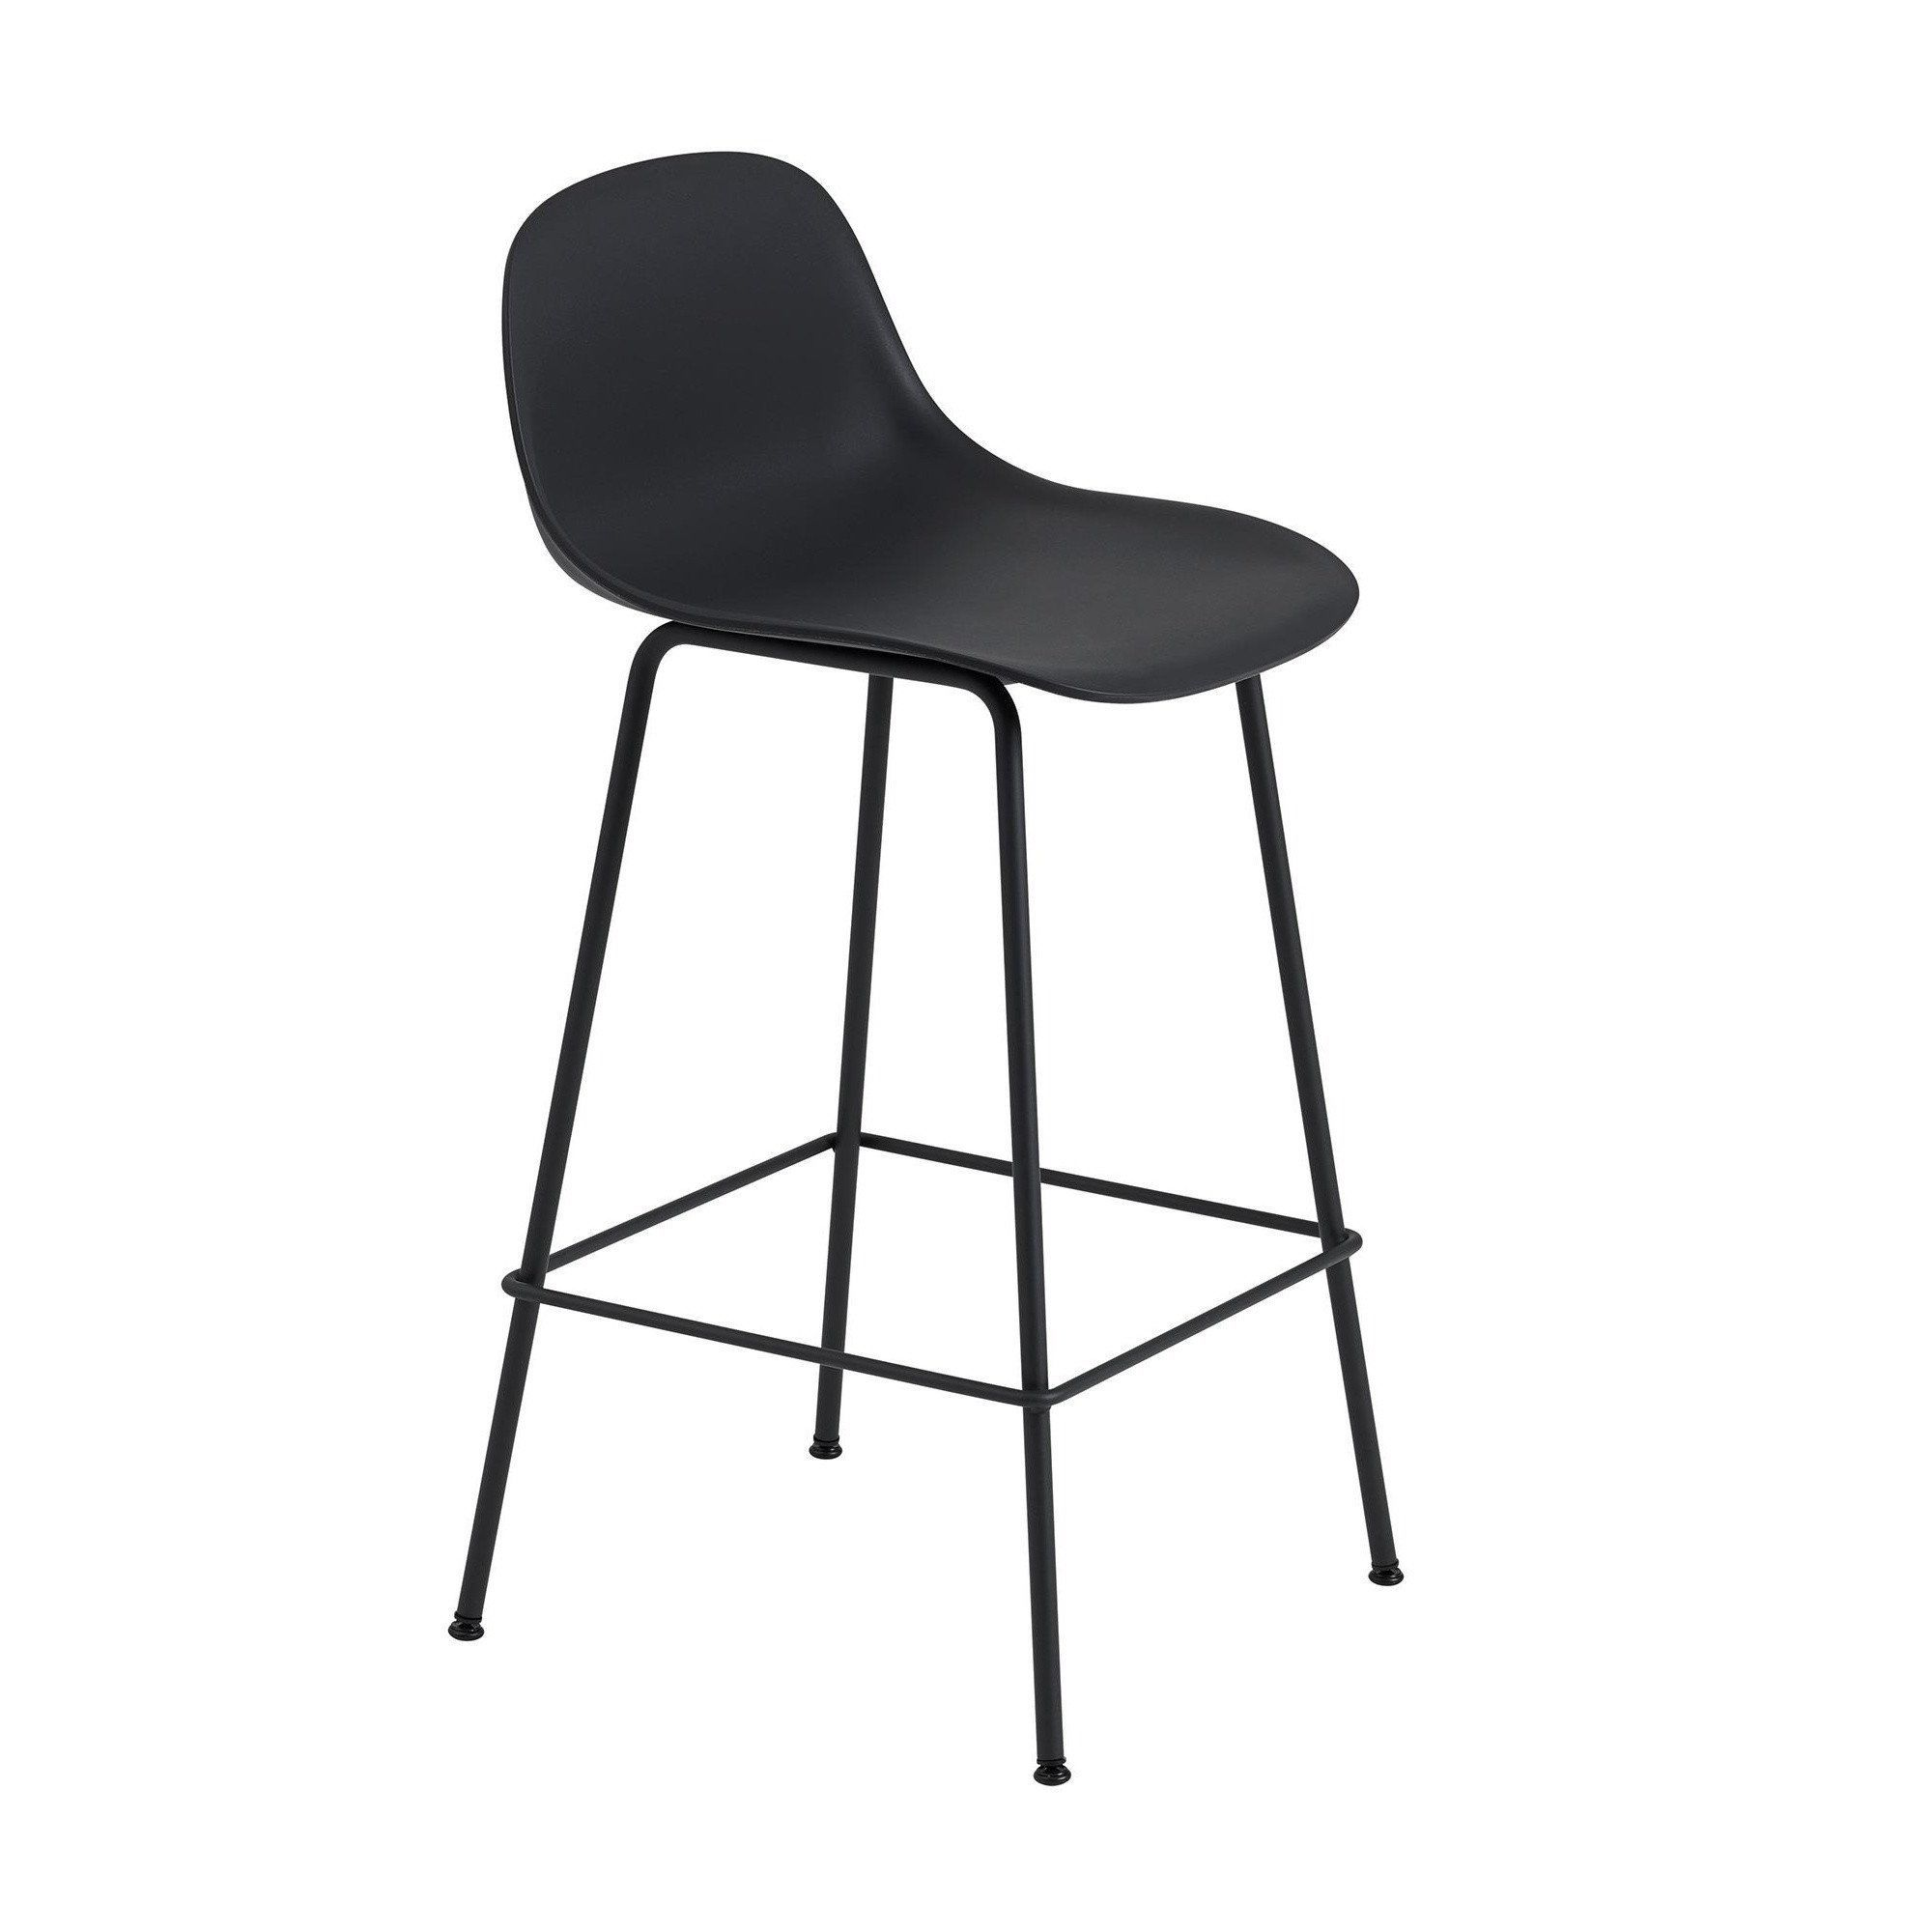 fiber tabouret de bar avec dossier 65cm muuto. Black Bedroom Furniture Sets. Home Design Ideas